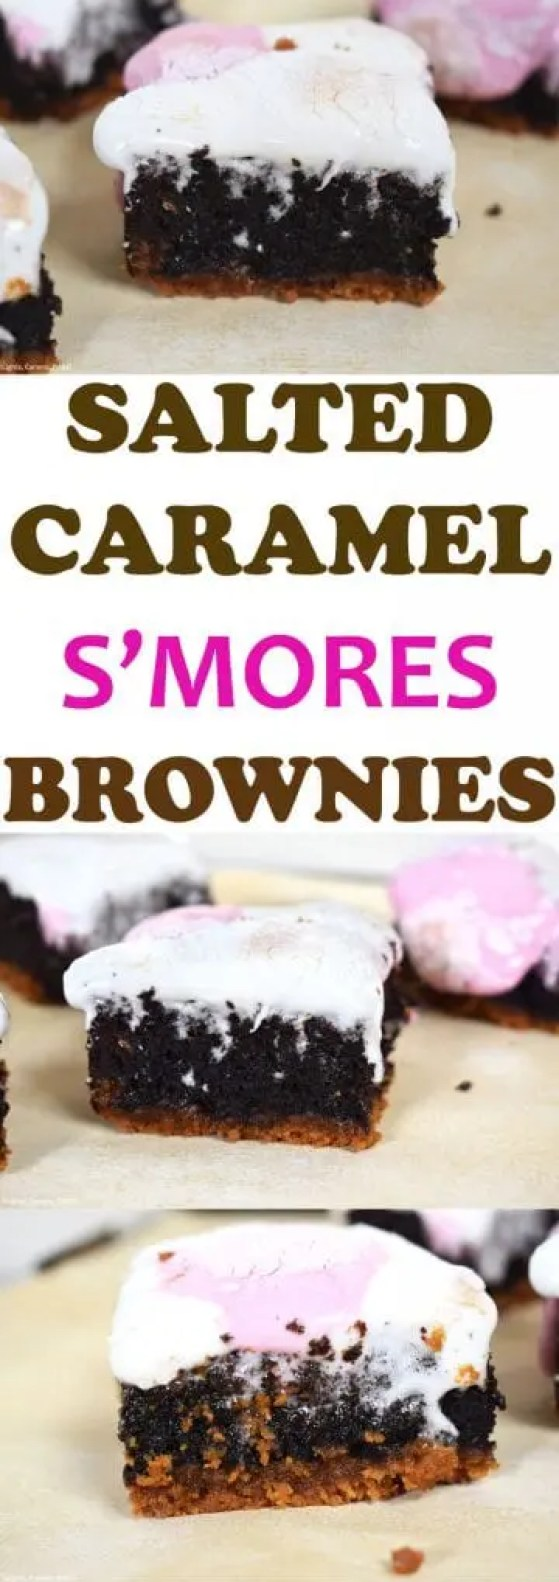 Salted Caramel S'mores Brownies are a graham cracker base with a layer of homemade salted caramel sauce, covered in a rich and fudgy chocolate brownie and topped with roasted marshmallows. All  the elements of a great s'more just upgraded to a salted caramel brownie! #saltedcaramel #brownies